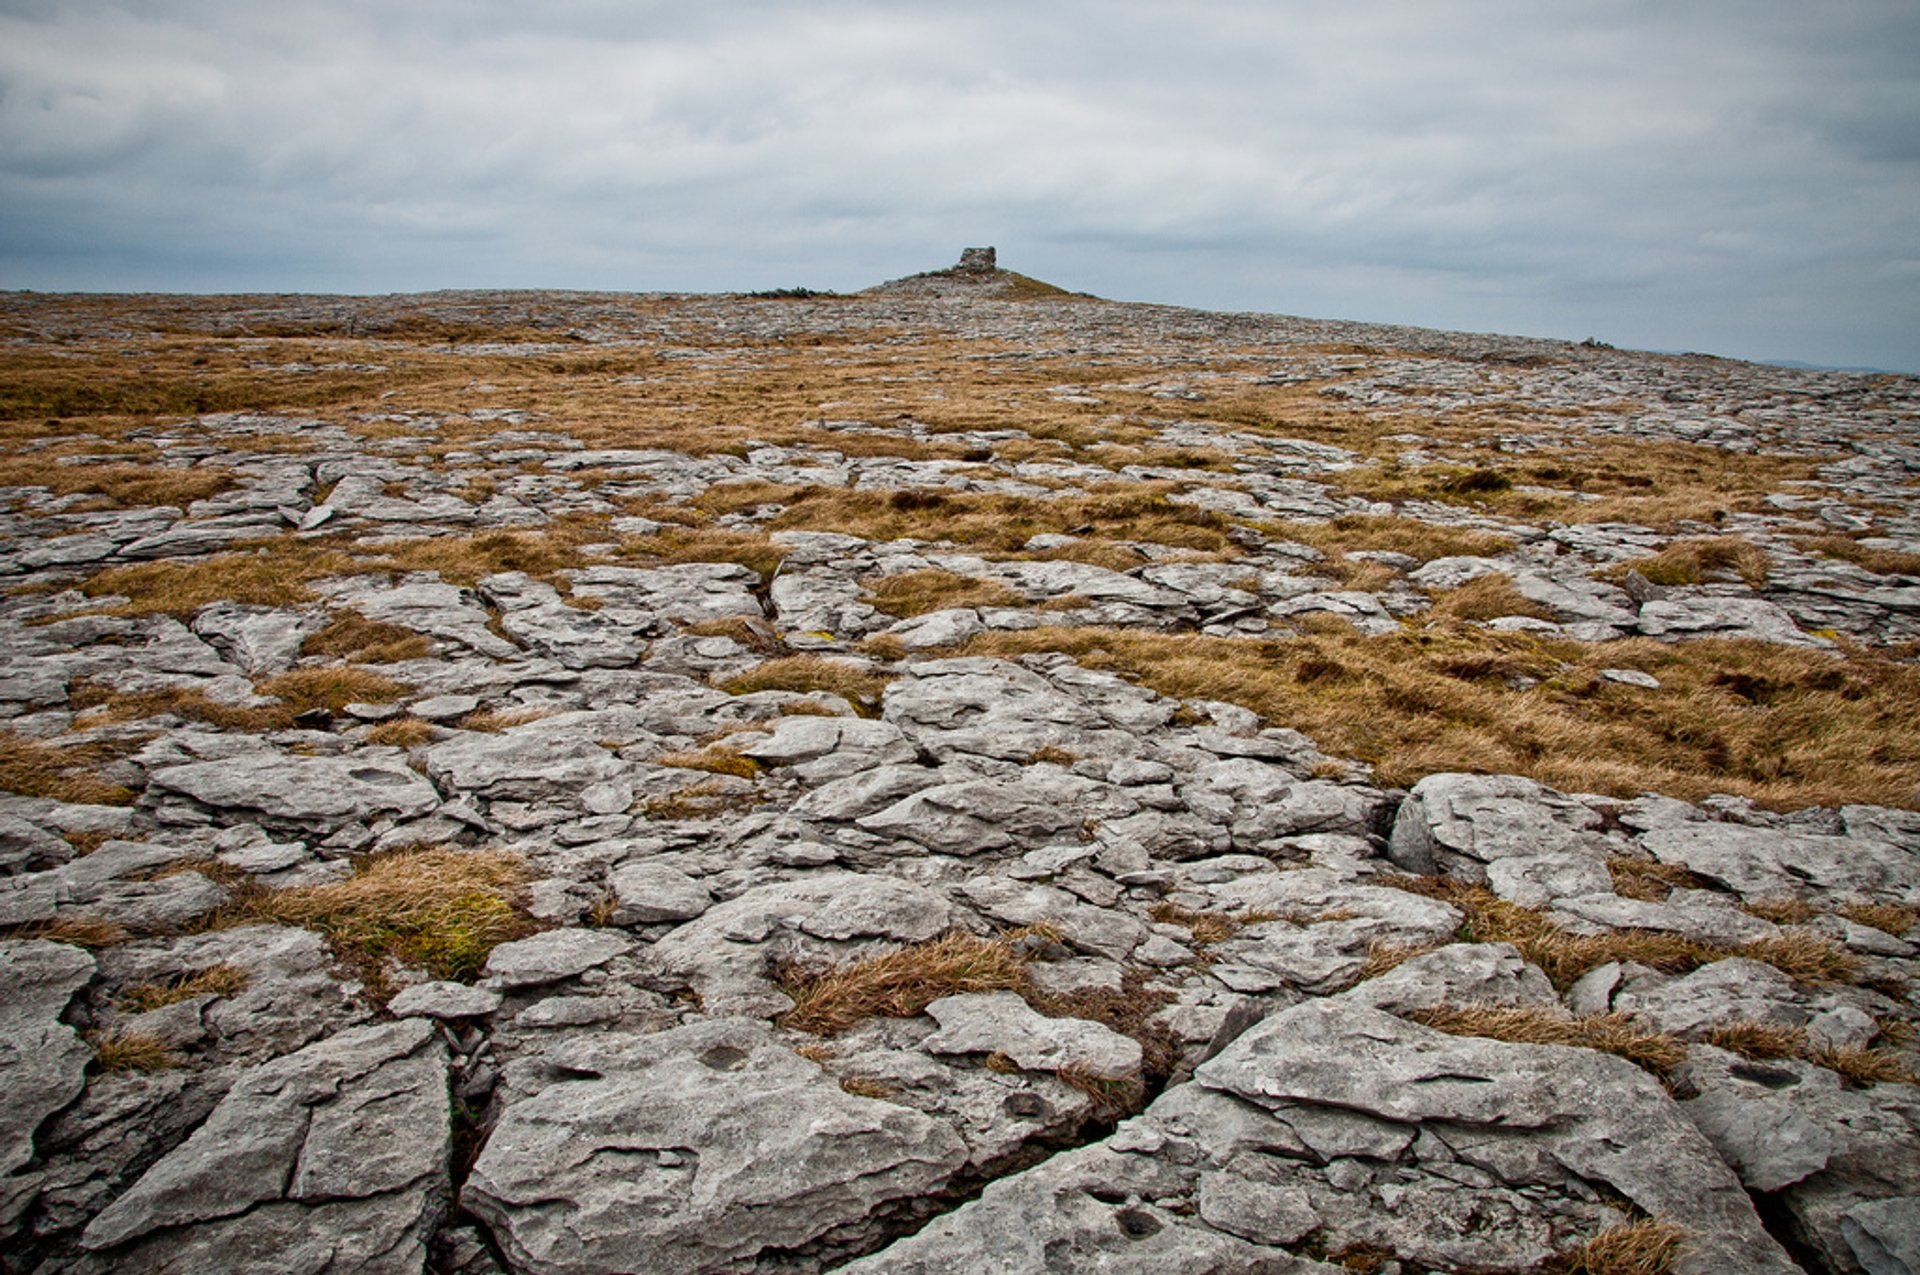 Hiking the Burren in Ireland 2020 - Best Time